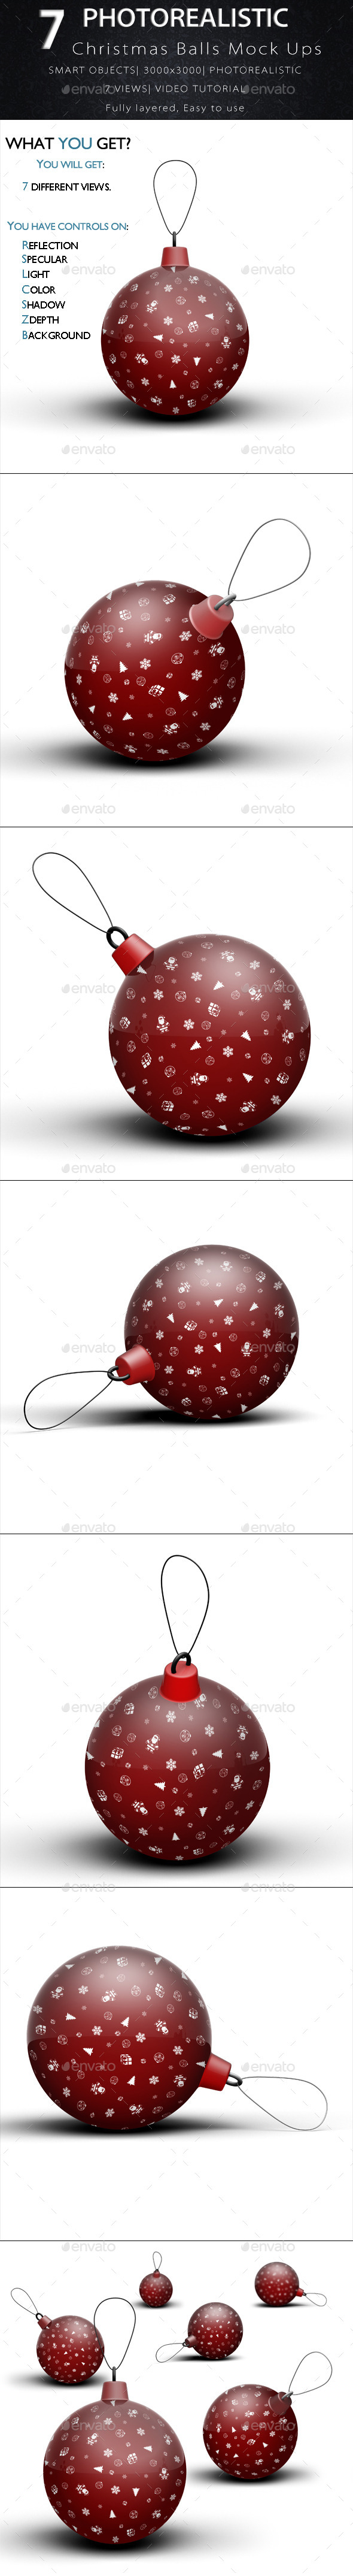 GraphicRiver Christmas Balls Mock Ups 9638971